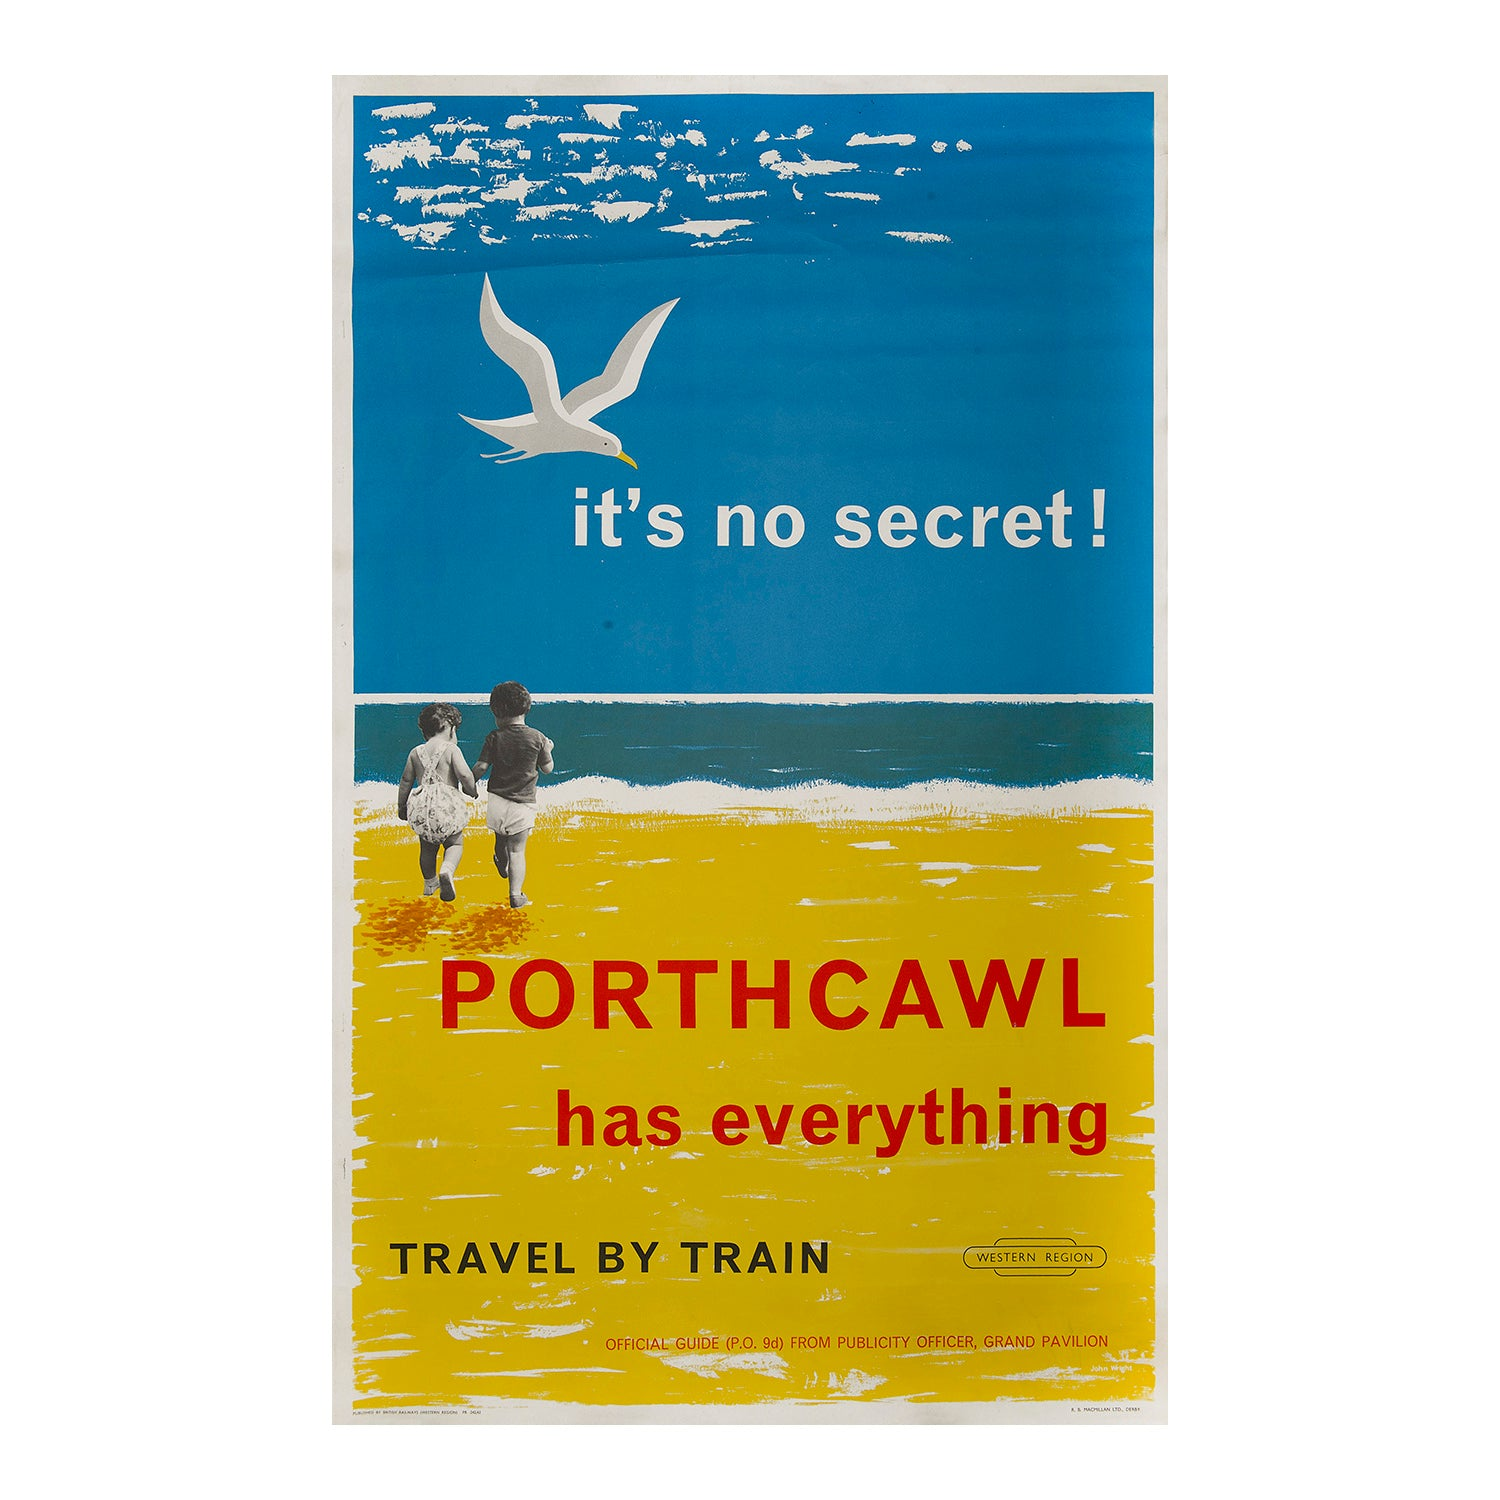 It's no secret ! Porthcawl has everything.